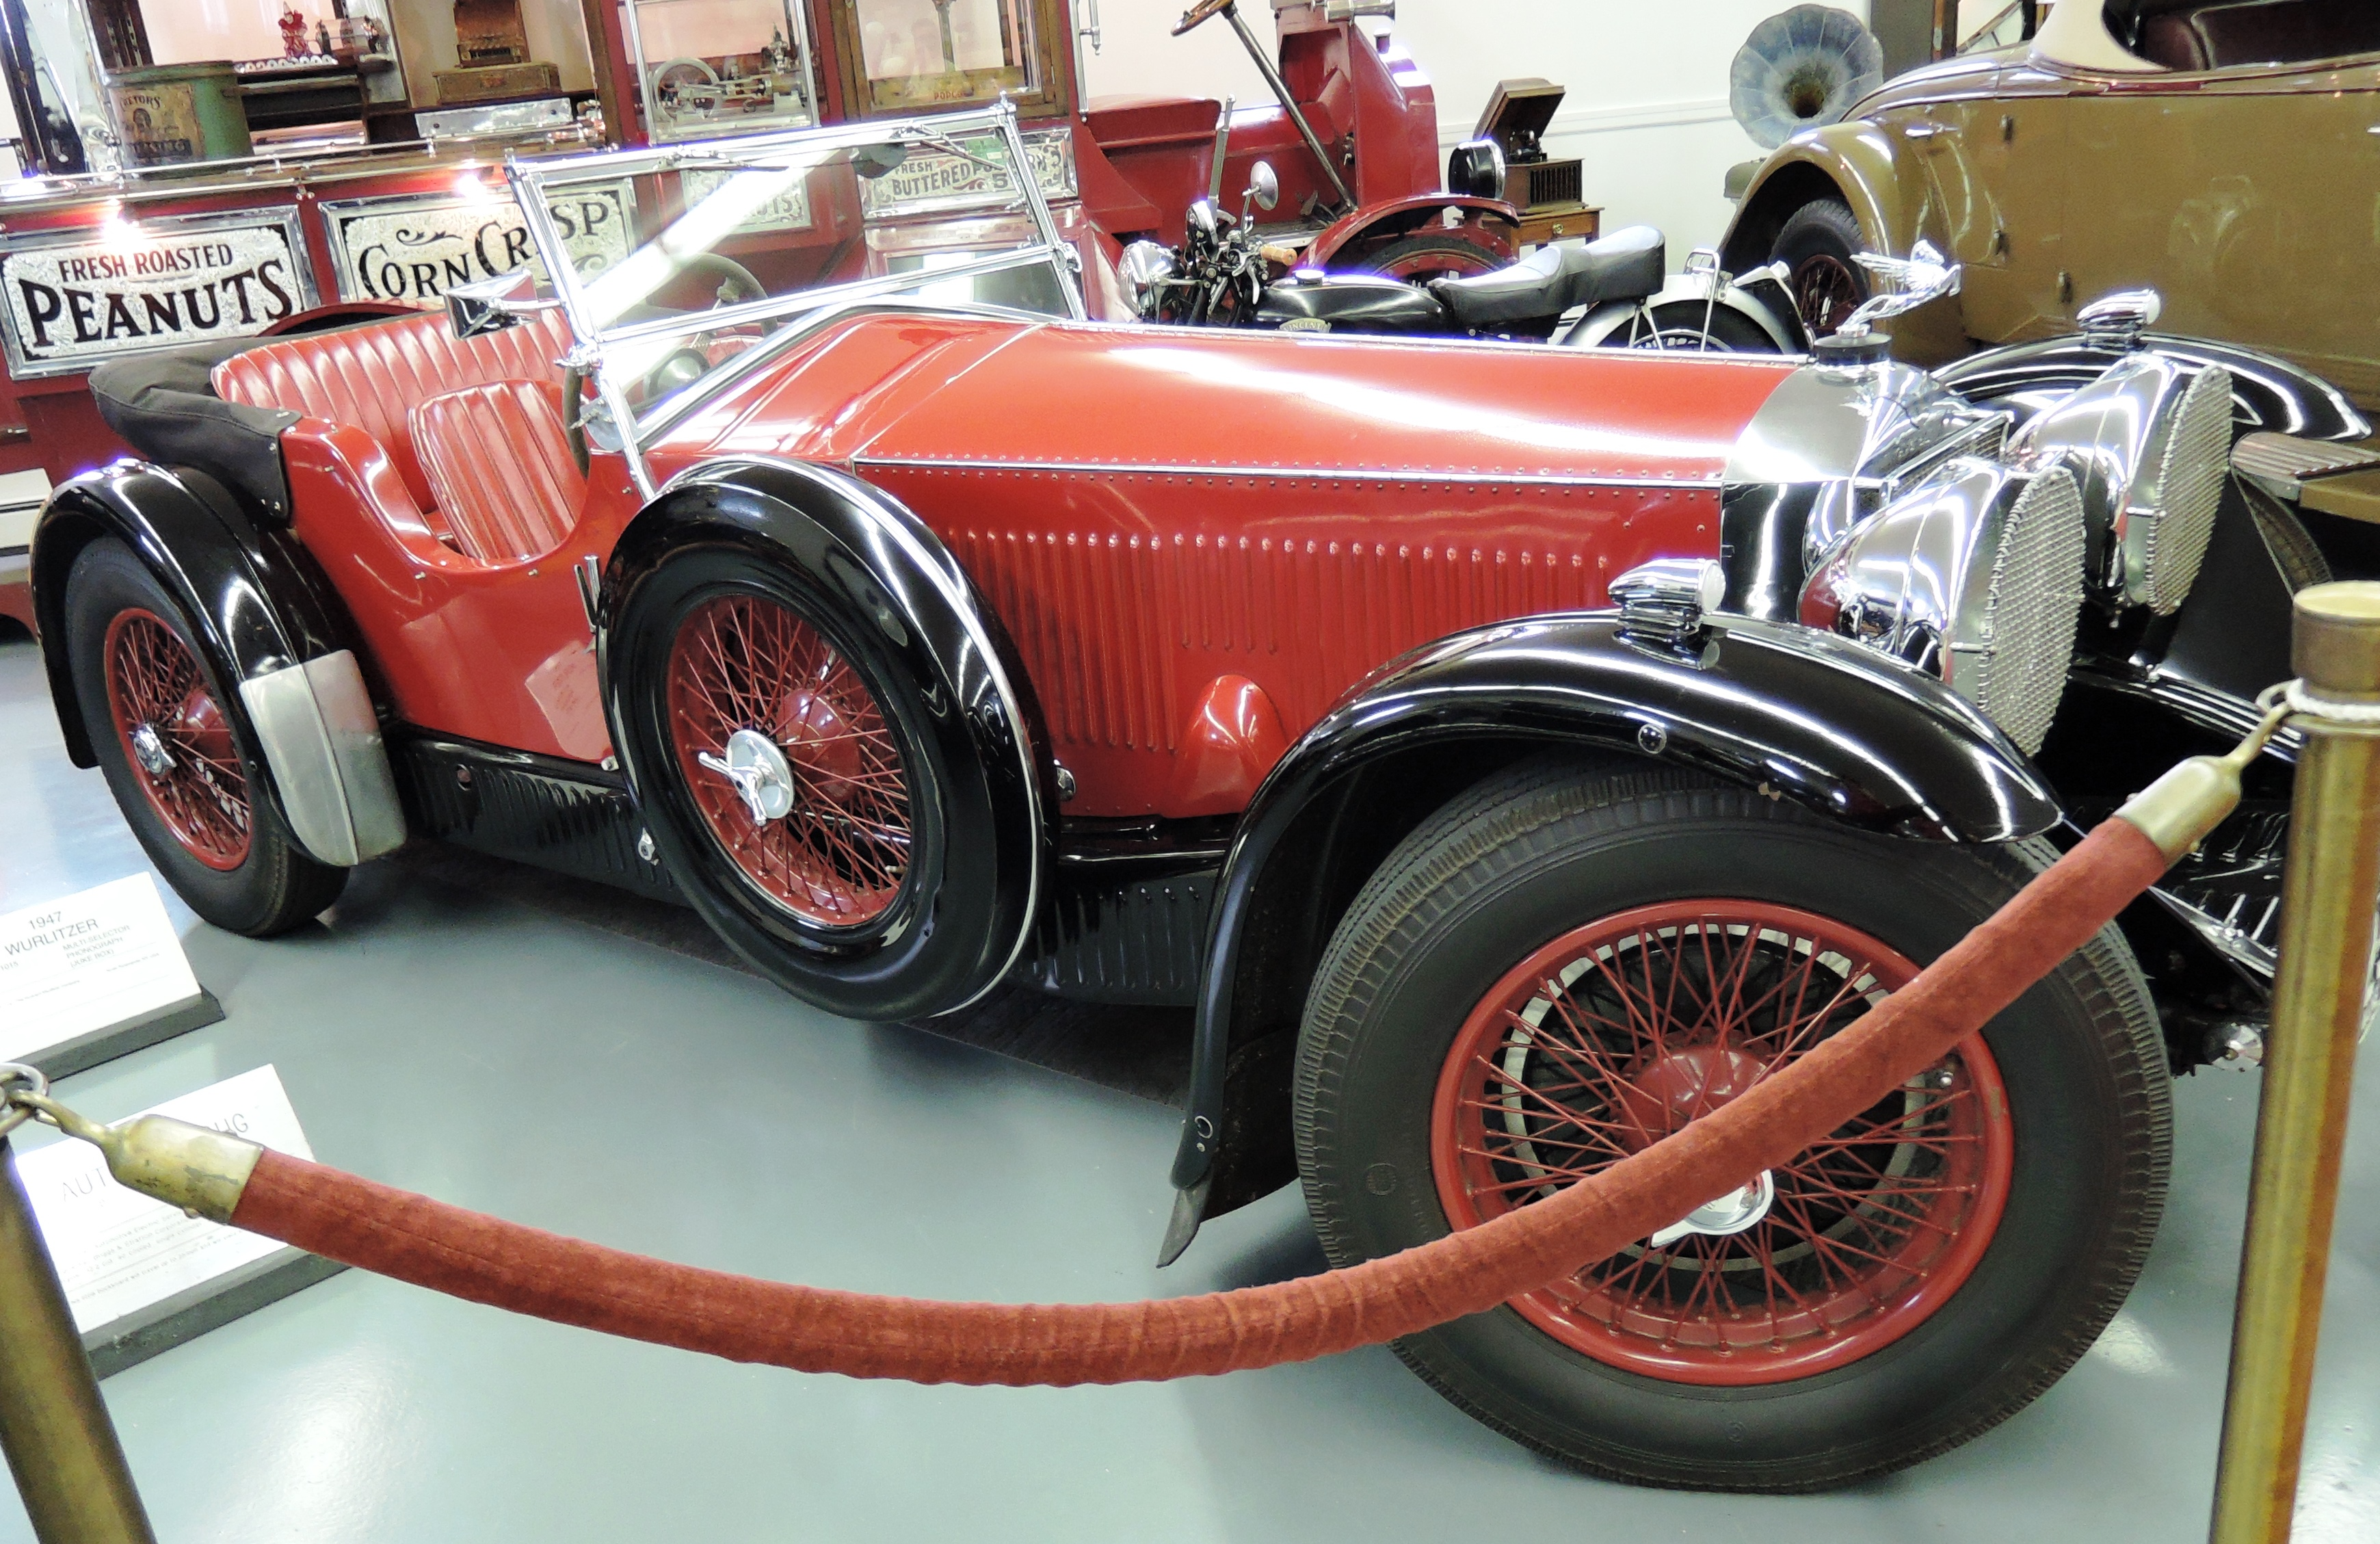 red 1931 Invicta S-Type Tourer - bahre car collection